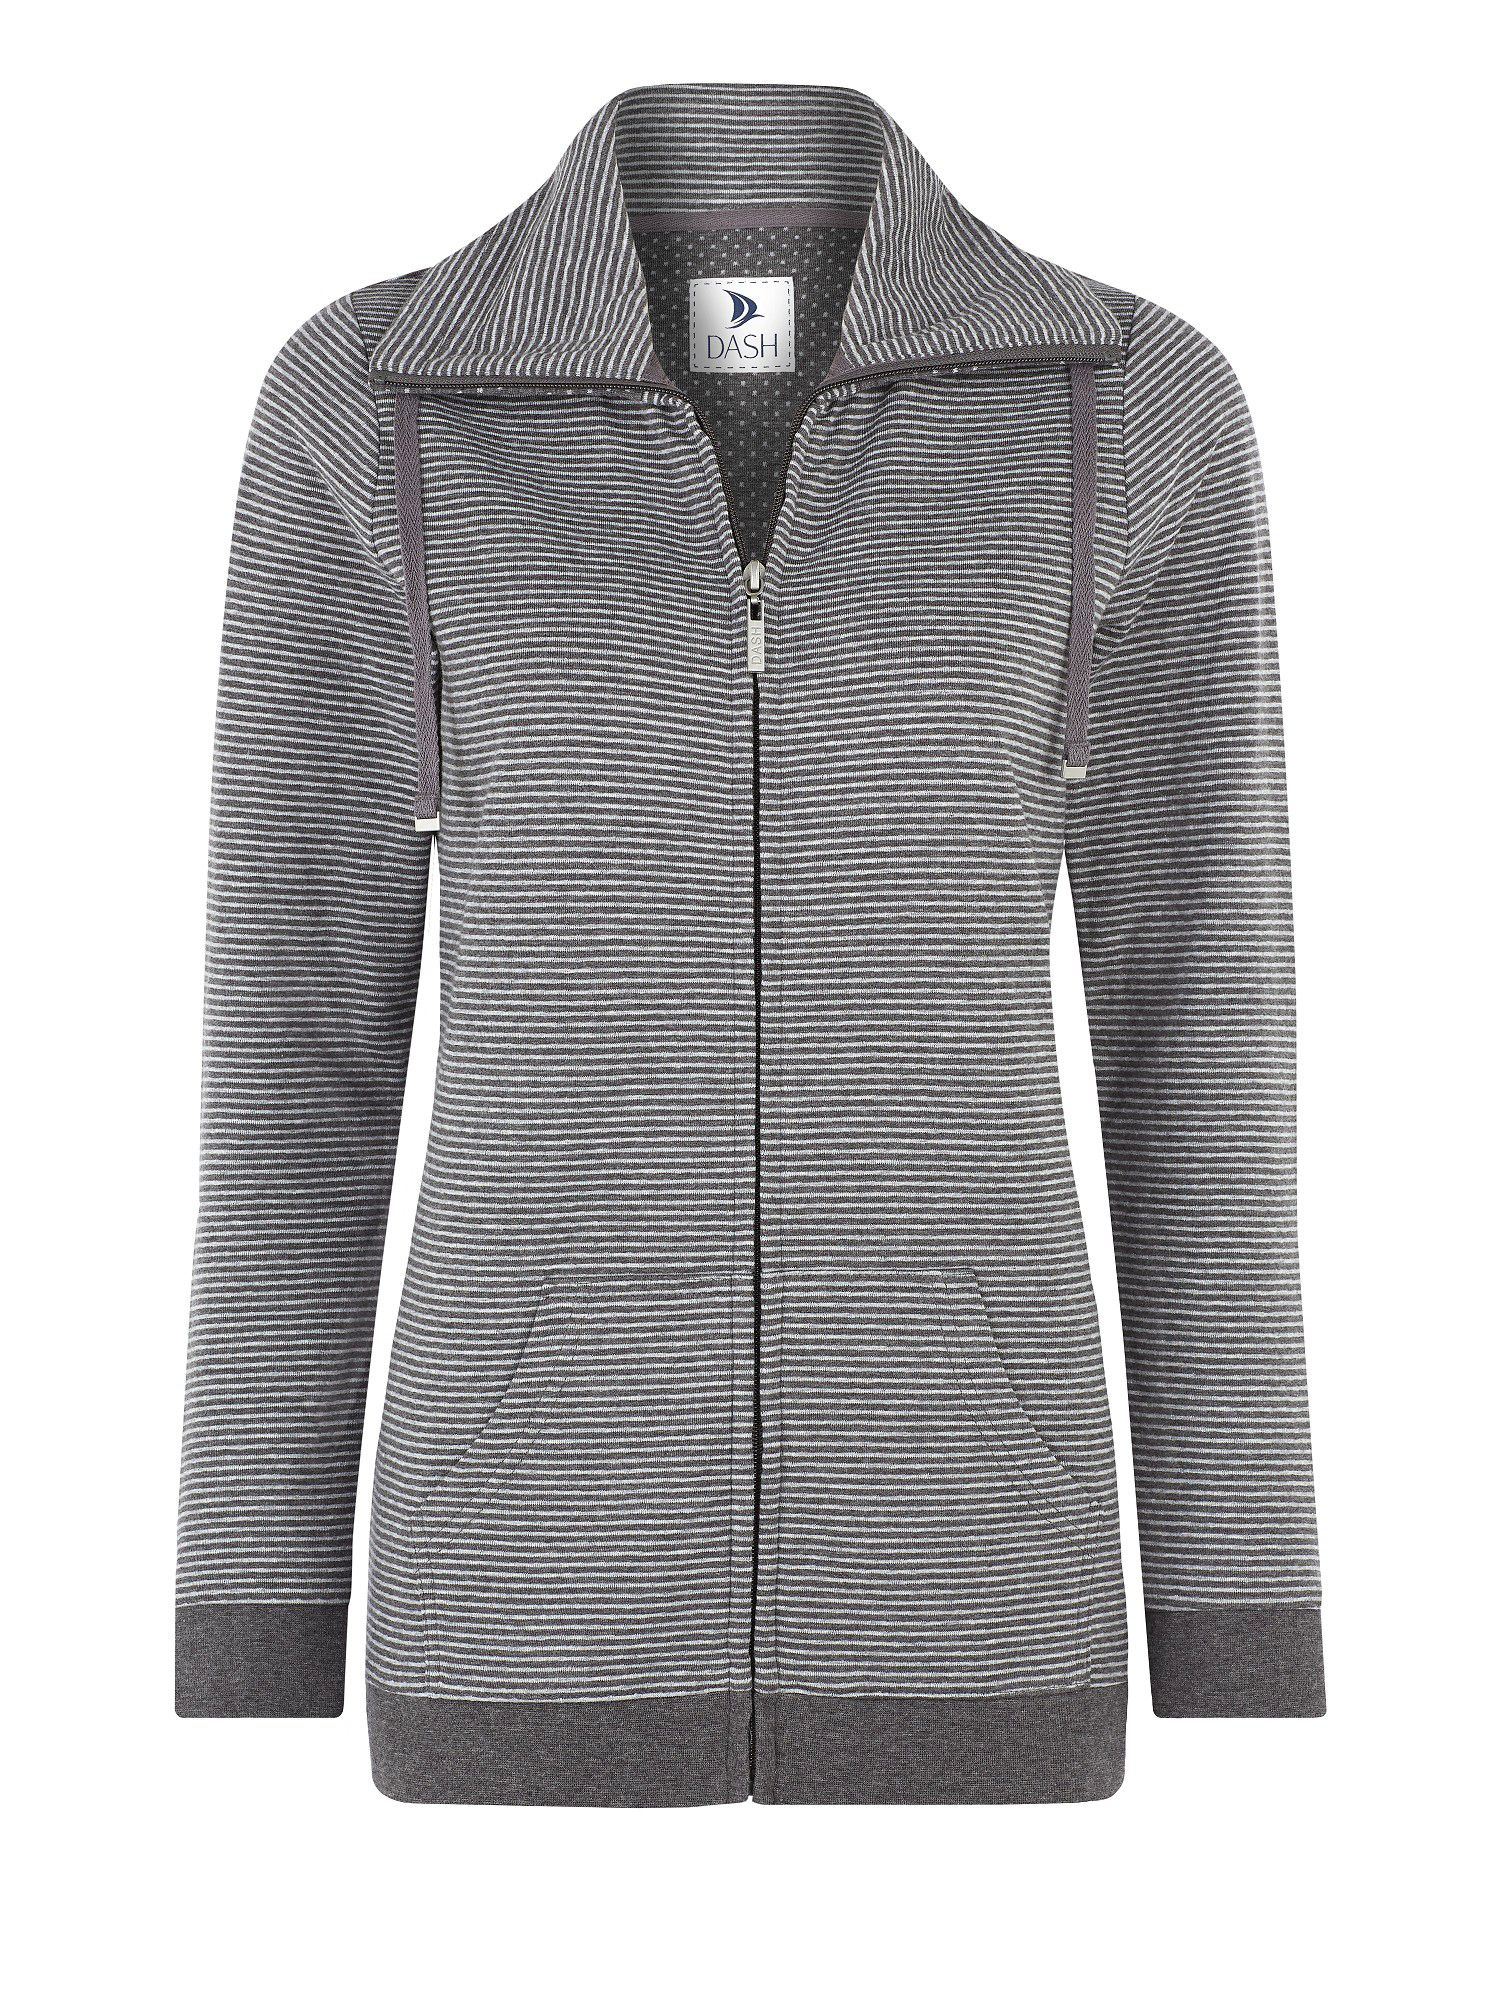 Grey stripe jersey jacket